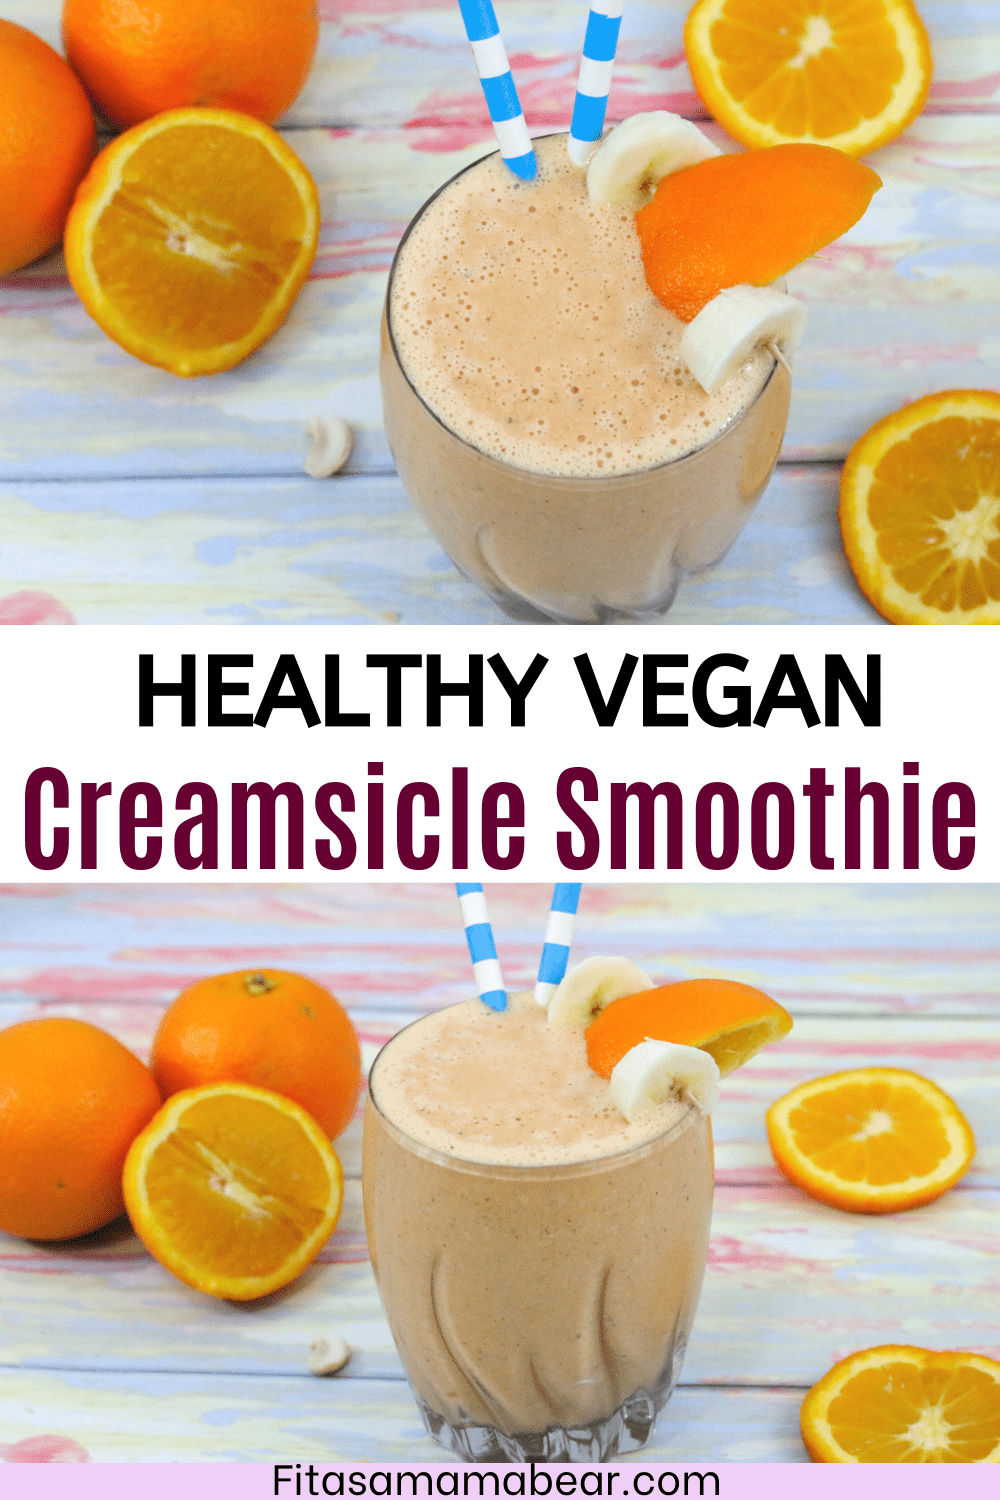 Pinterest image with text: two images of an orange creamsicle smoothie in a glass with bananas and orange on the side of the glass